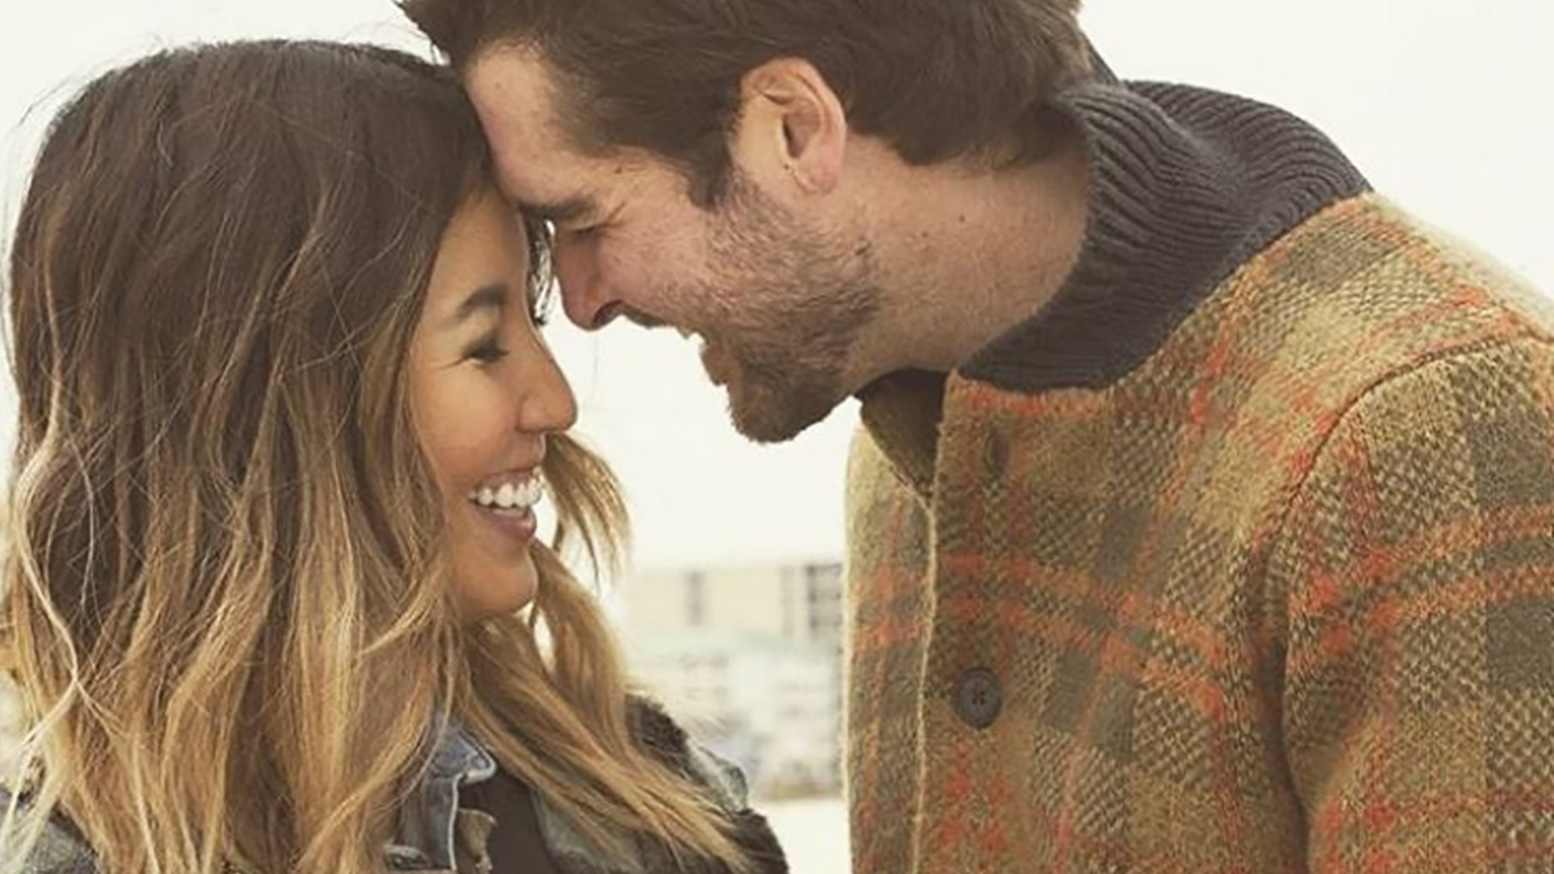 Duck Dynasty's Rebecca Robertson, Johnreed Loflin Engaged! Sadie Robertson